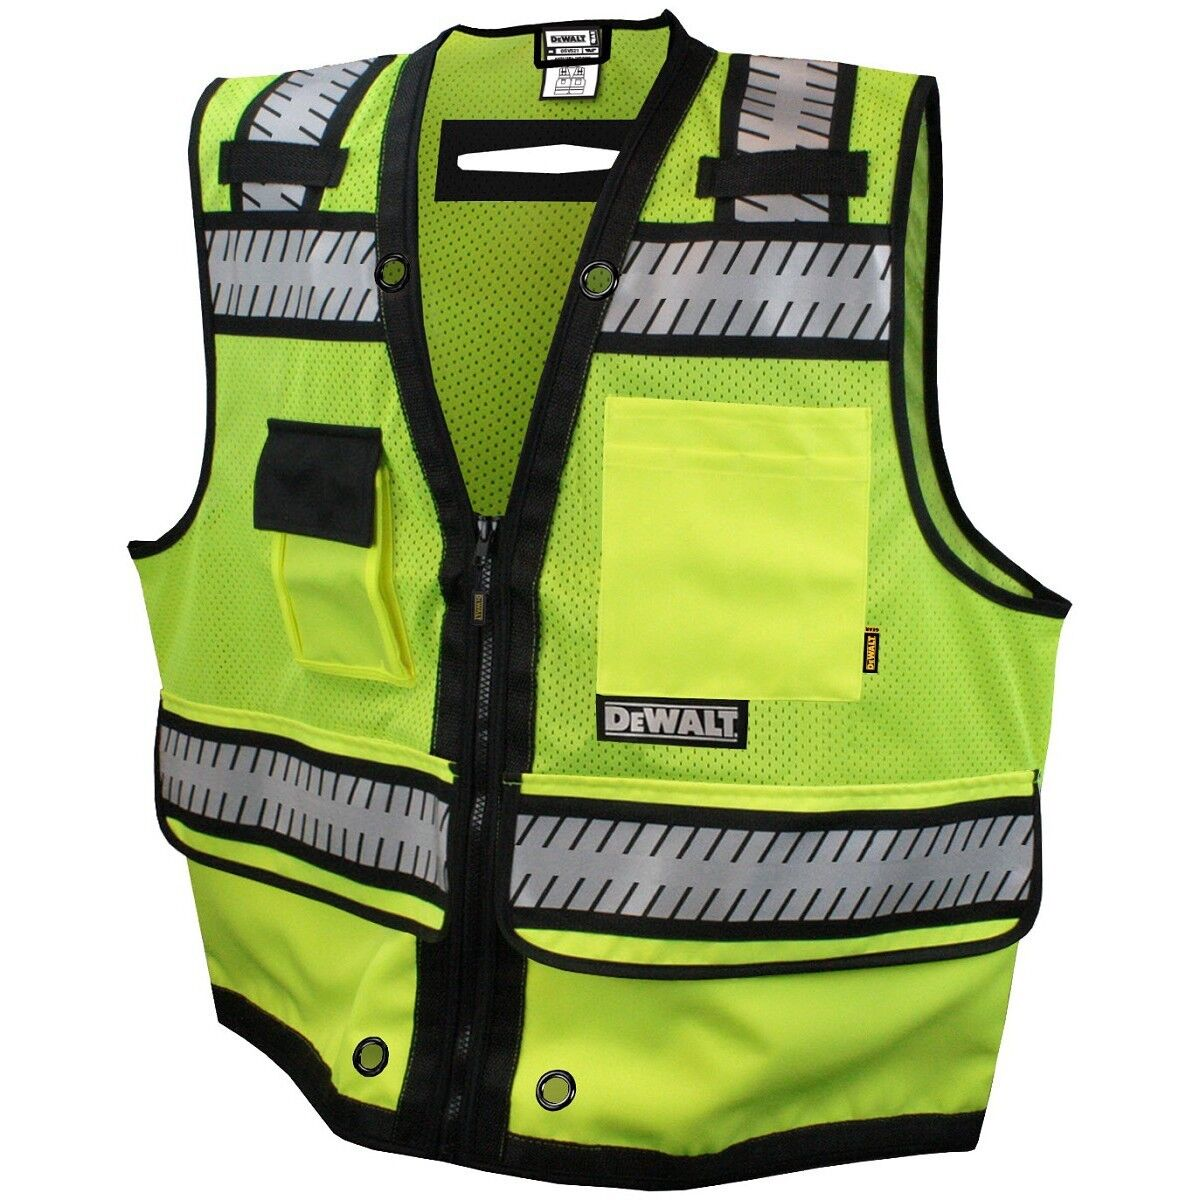 DeWALT Heavy Duty Class 2 Reflective Surveyor Safety Vest, Y